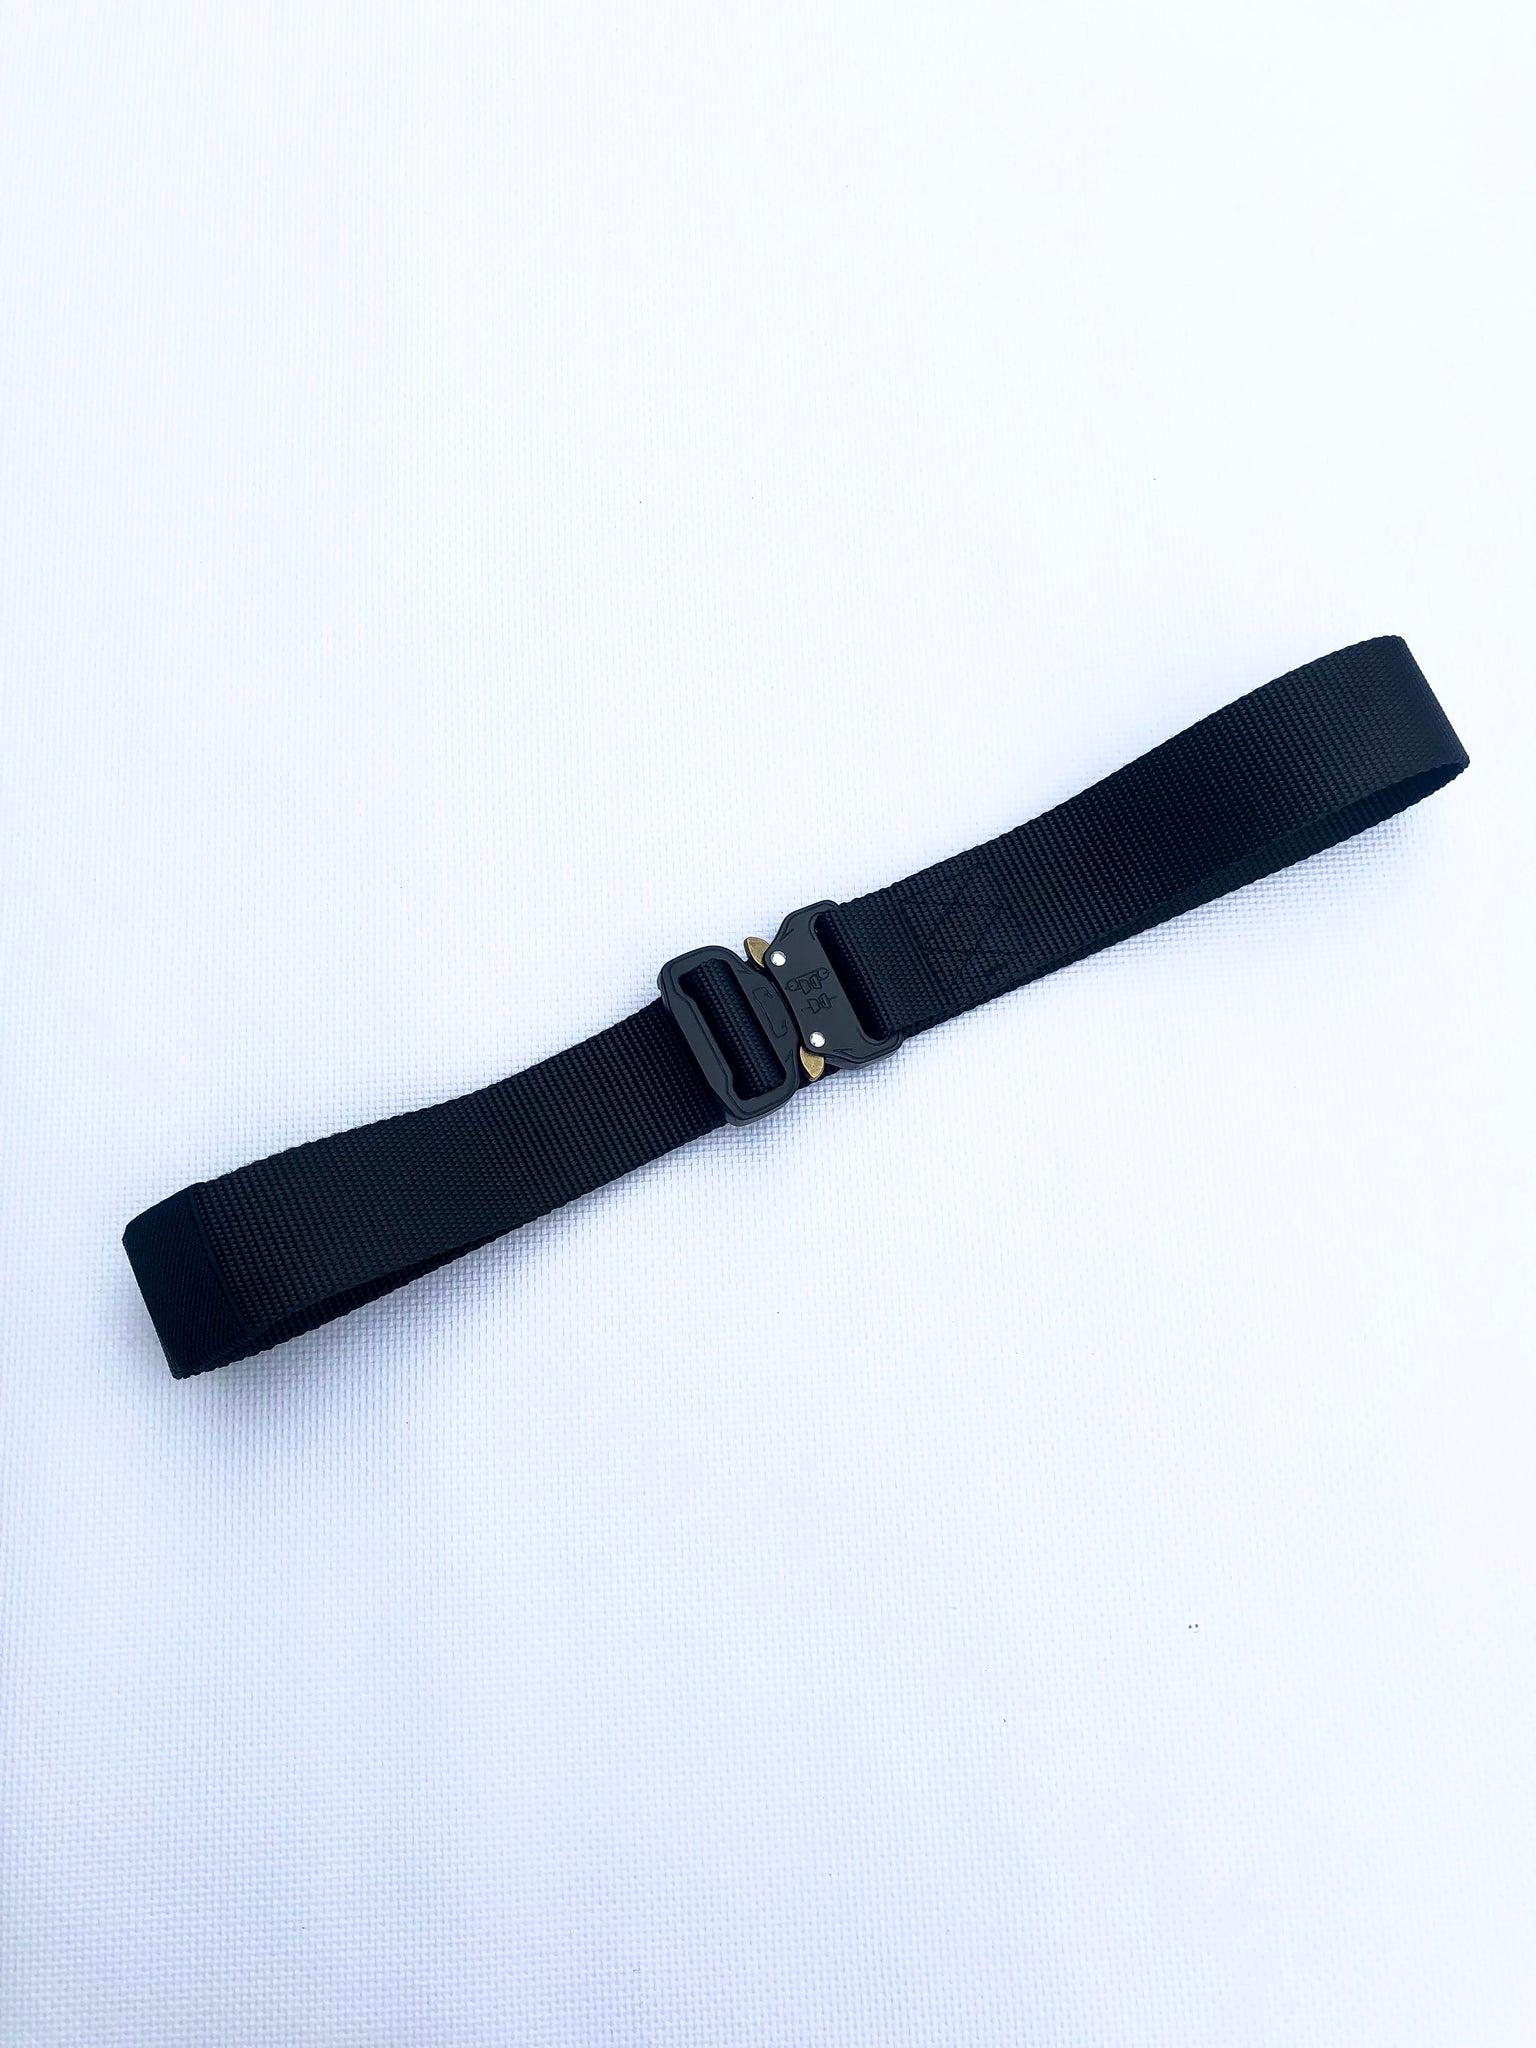 TACTICAL BELT - BLACK